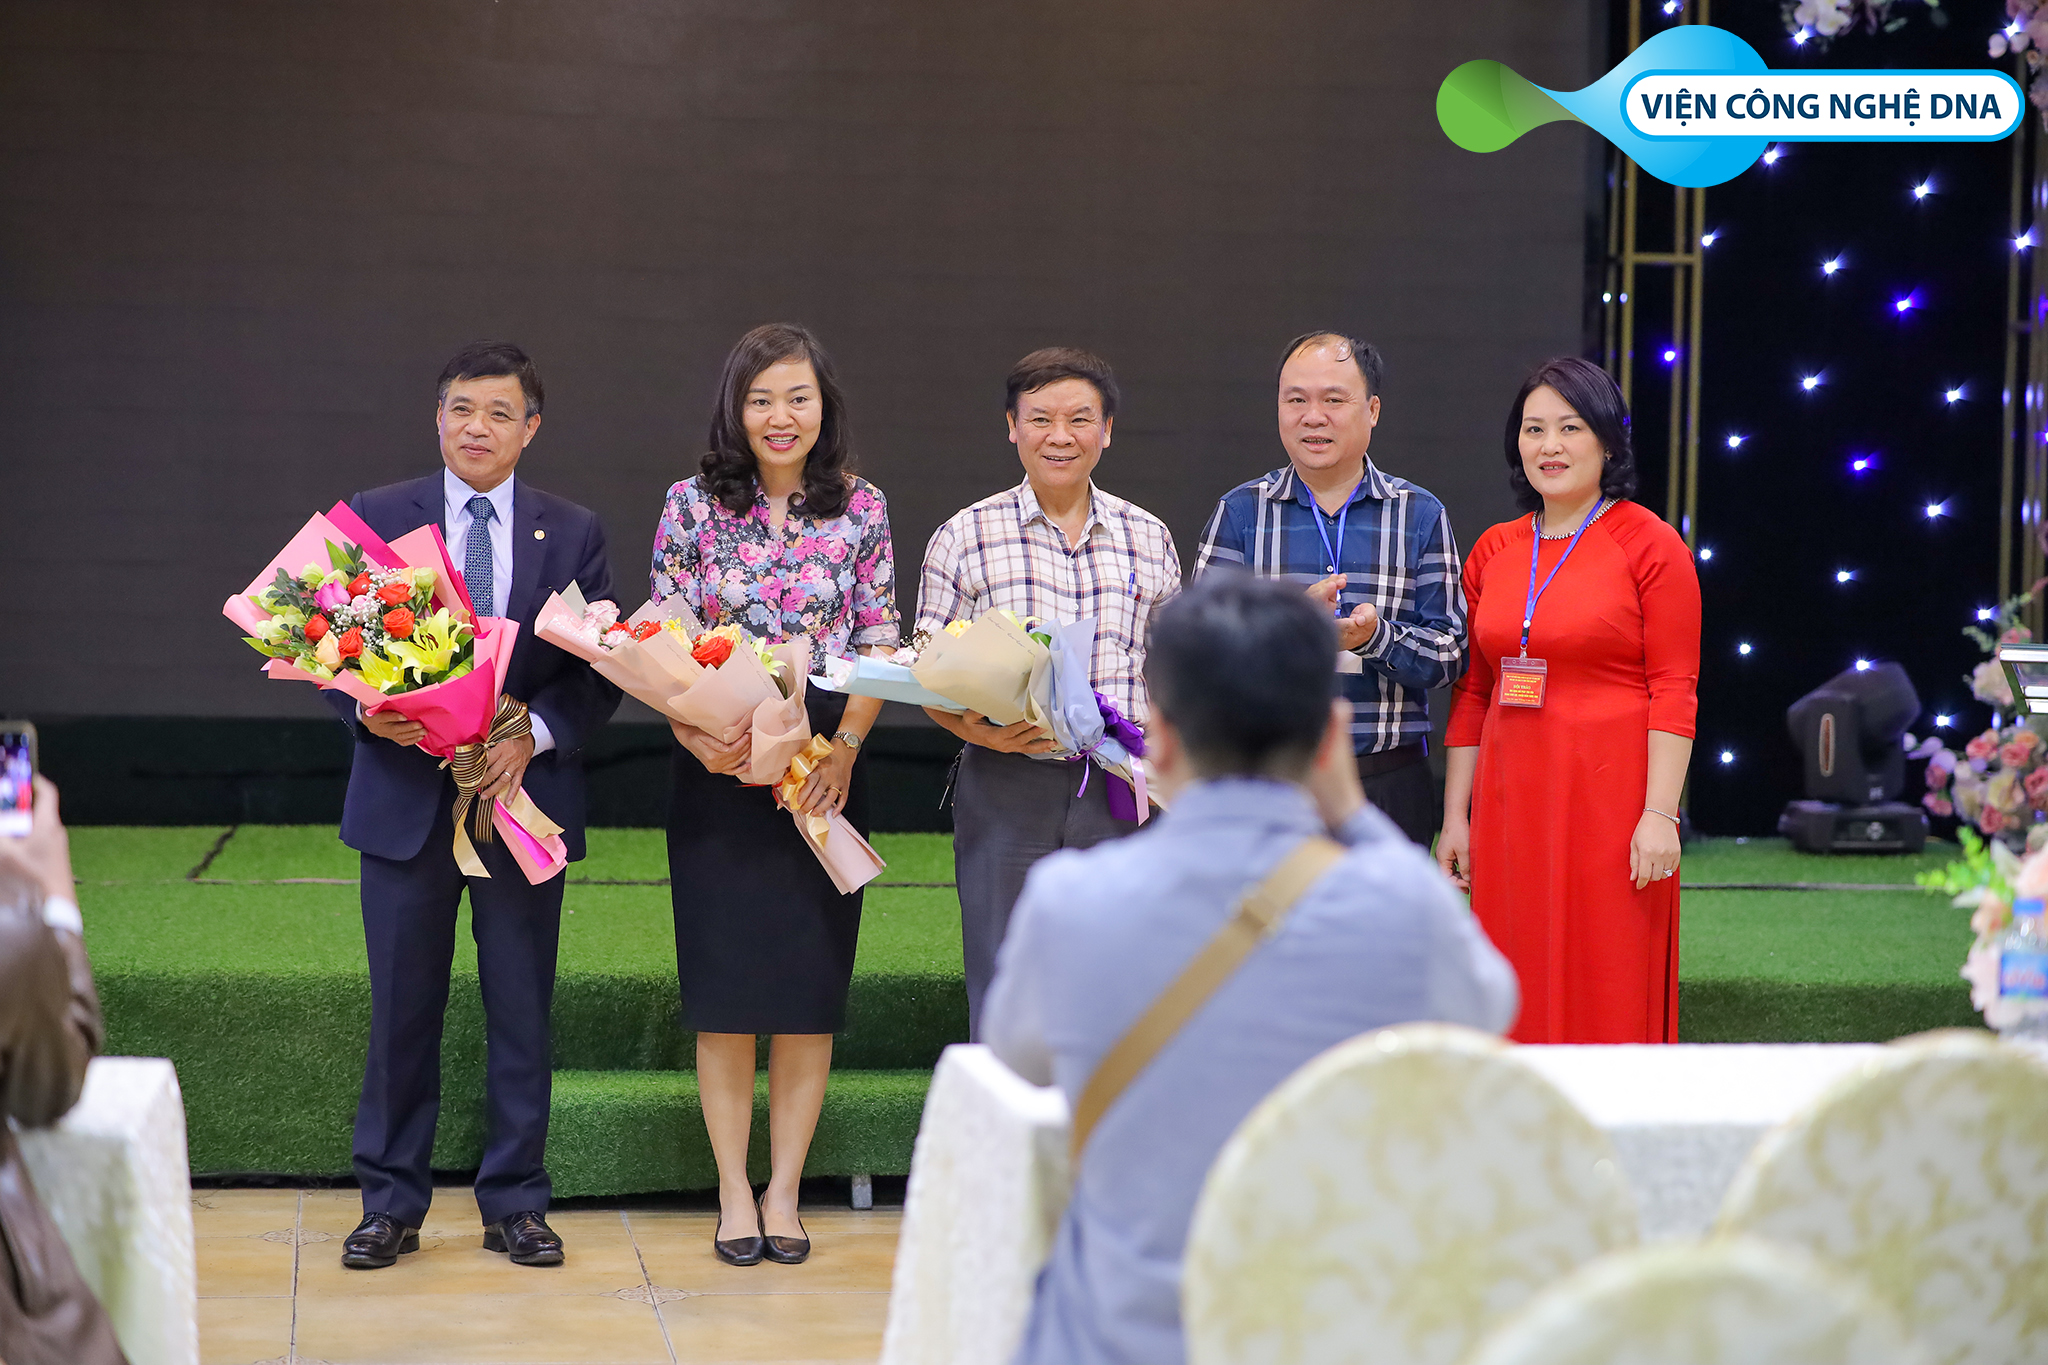 hoi thao sang loc truoc sinh vien cong nghe dna 6